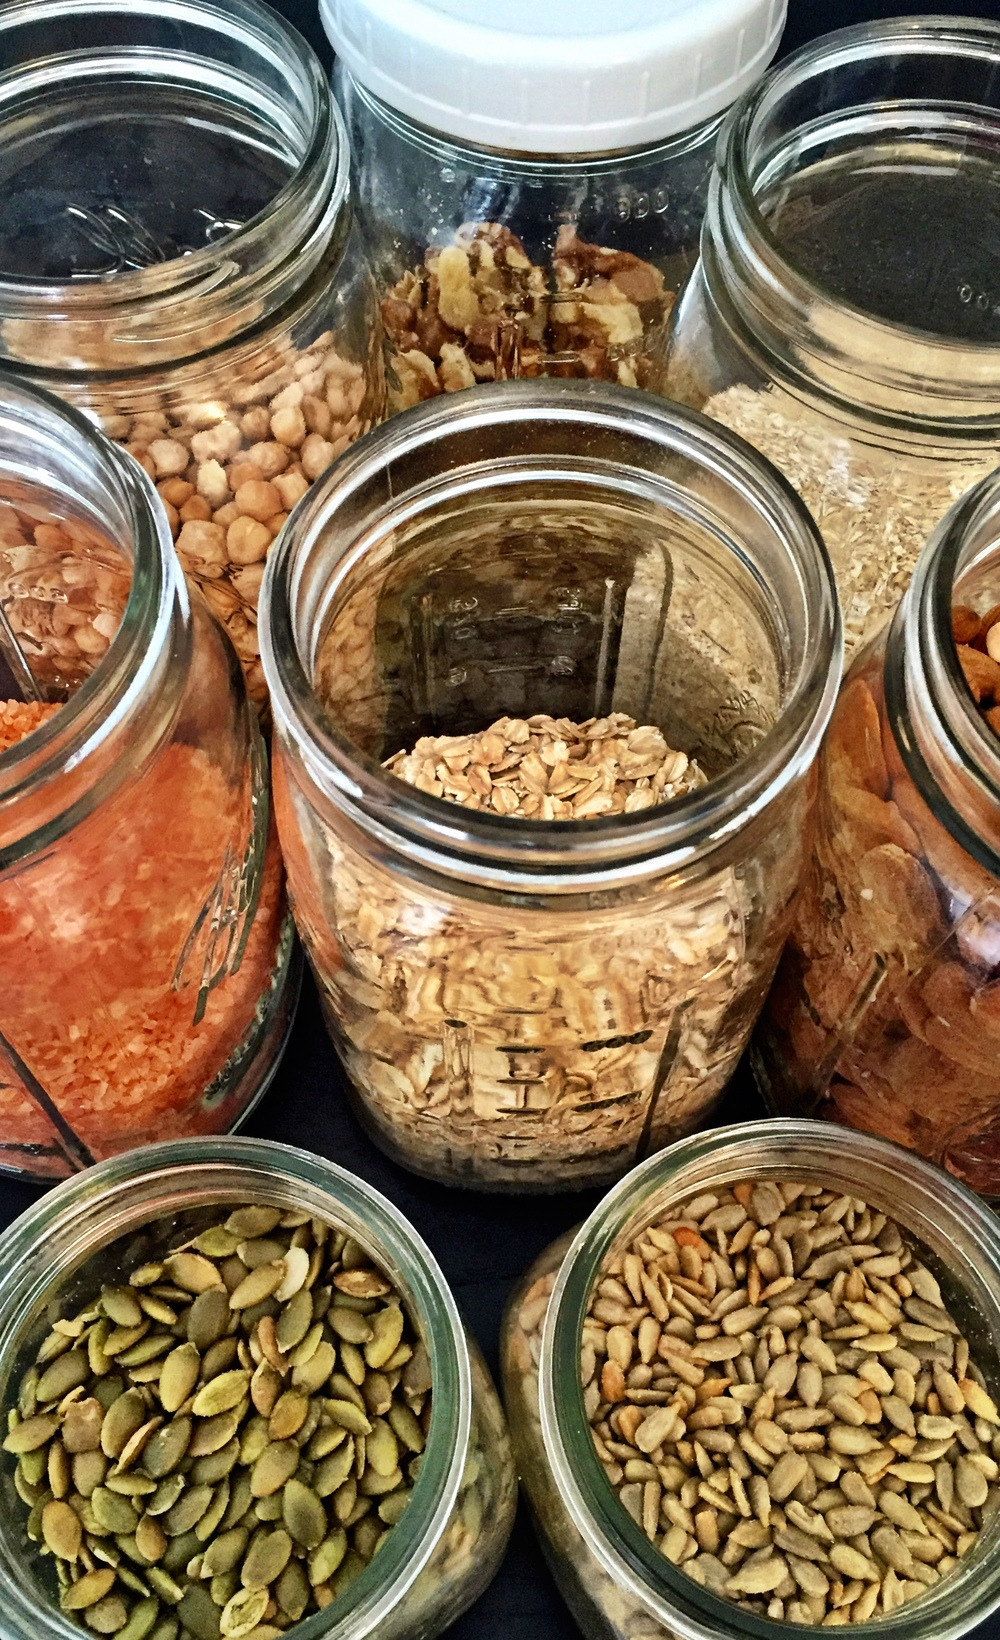 Some of the staples currently on hand in our kitchen. walnuts, oat bran, almonds, sunflower seeds, pumpkin seeds, Hawaiian sea salt, garbanzo beans, rolled oats.  (Clockwise from top)